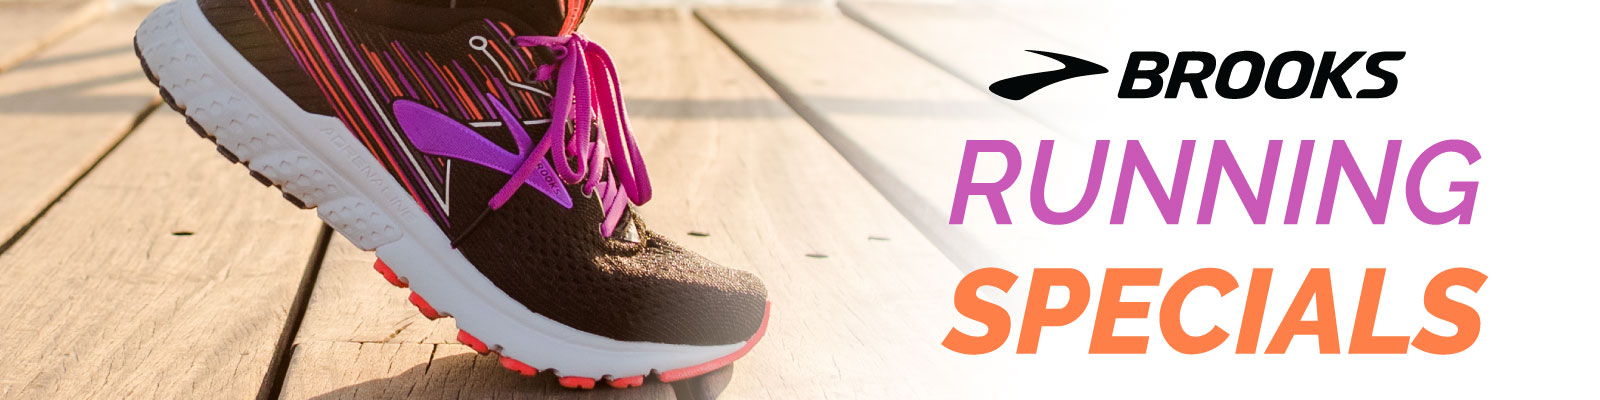 Brooks Running Specials